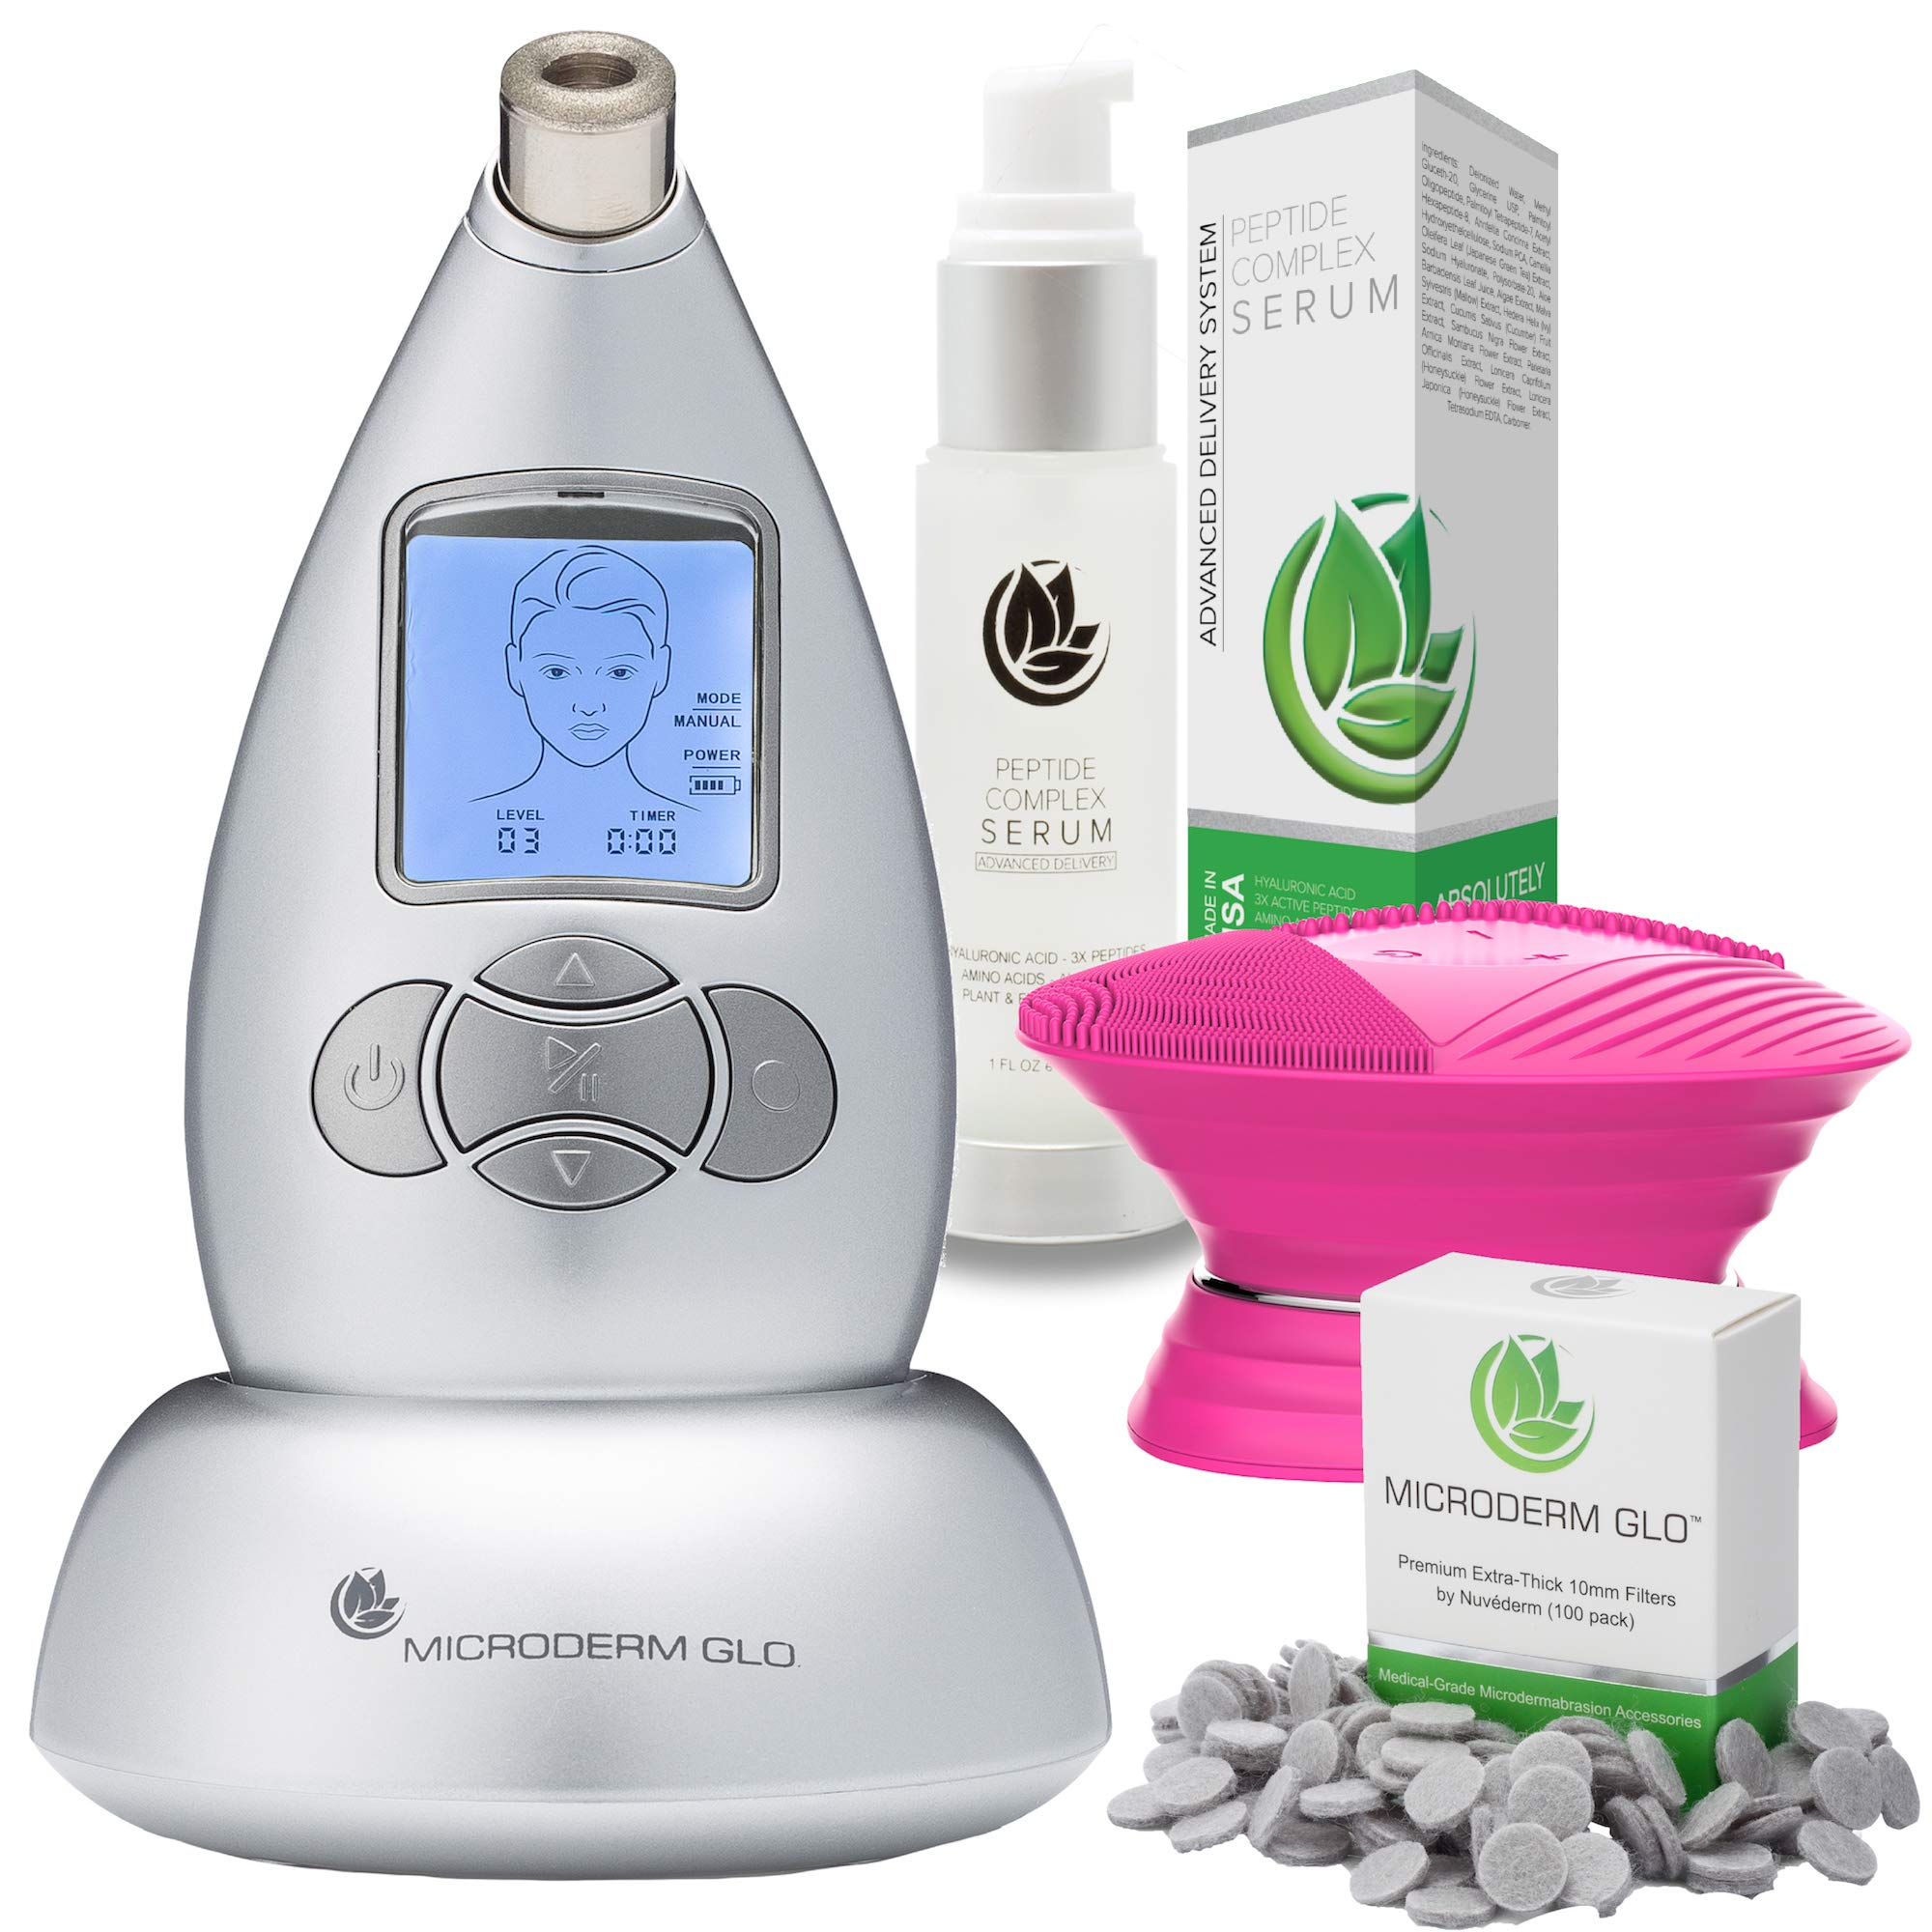 Microderm GLO Advanced Skincare Bundle Includes Diamond Microdermabrasion System, 10mm Filters 100 pack, Peptide Complex Serum, Sonic Facial Cleansing Brush. Perfect Anti Aging Treatment Kit (Silver)